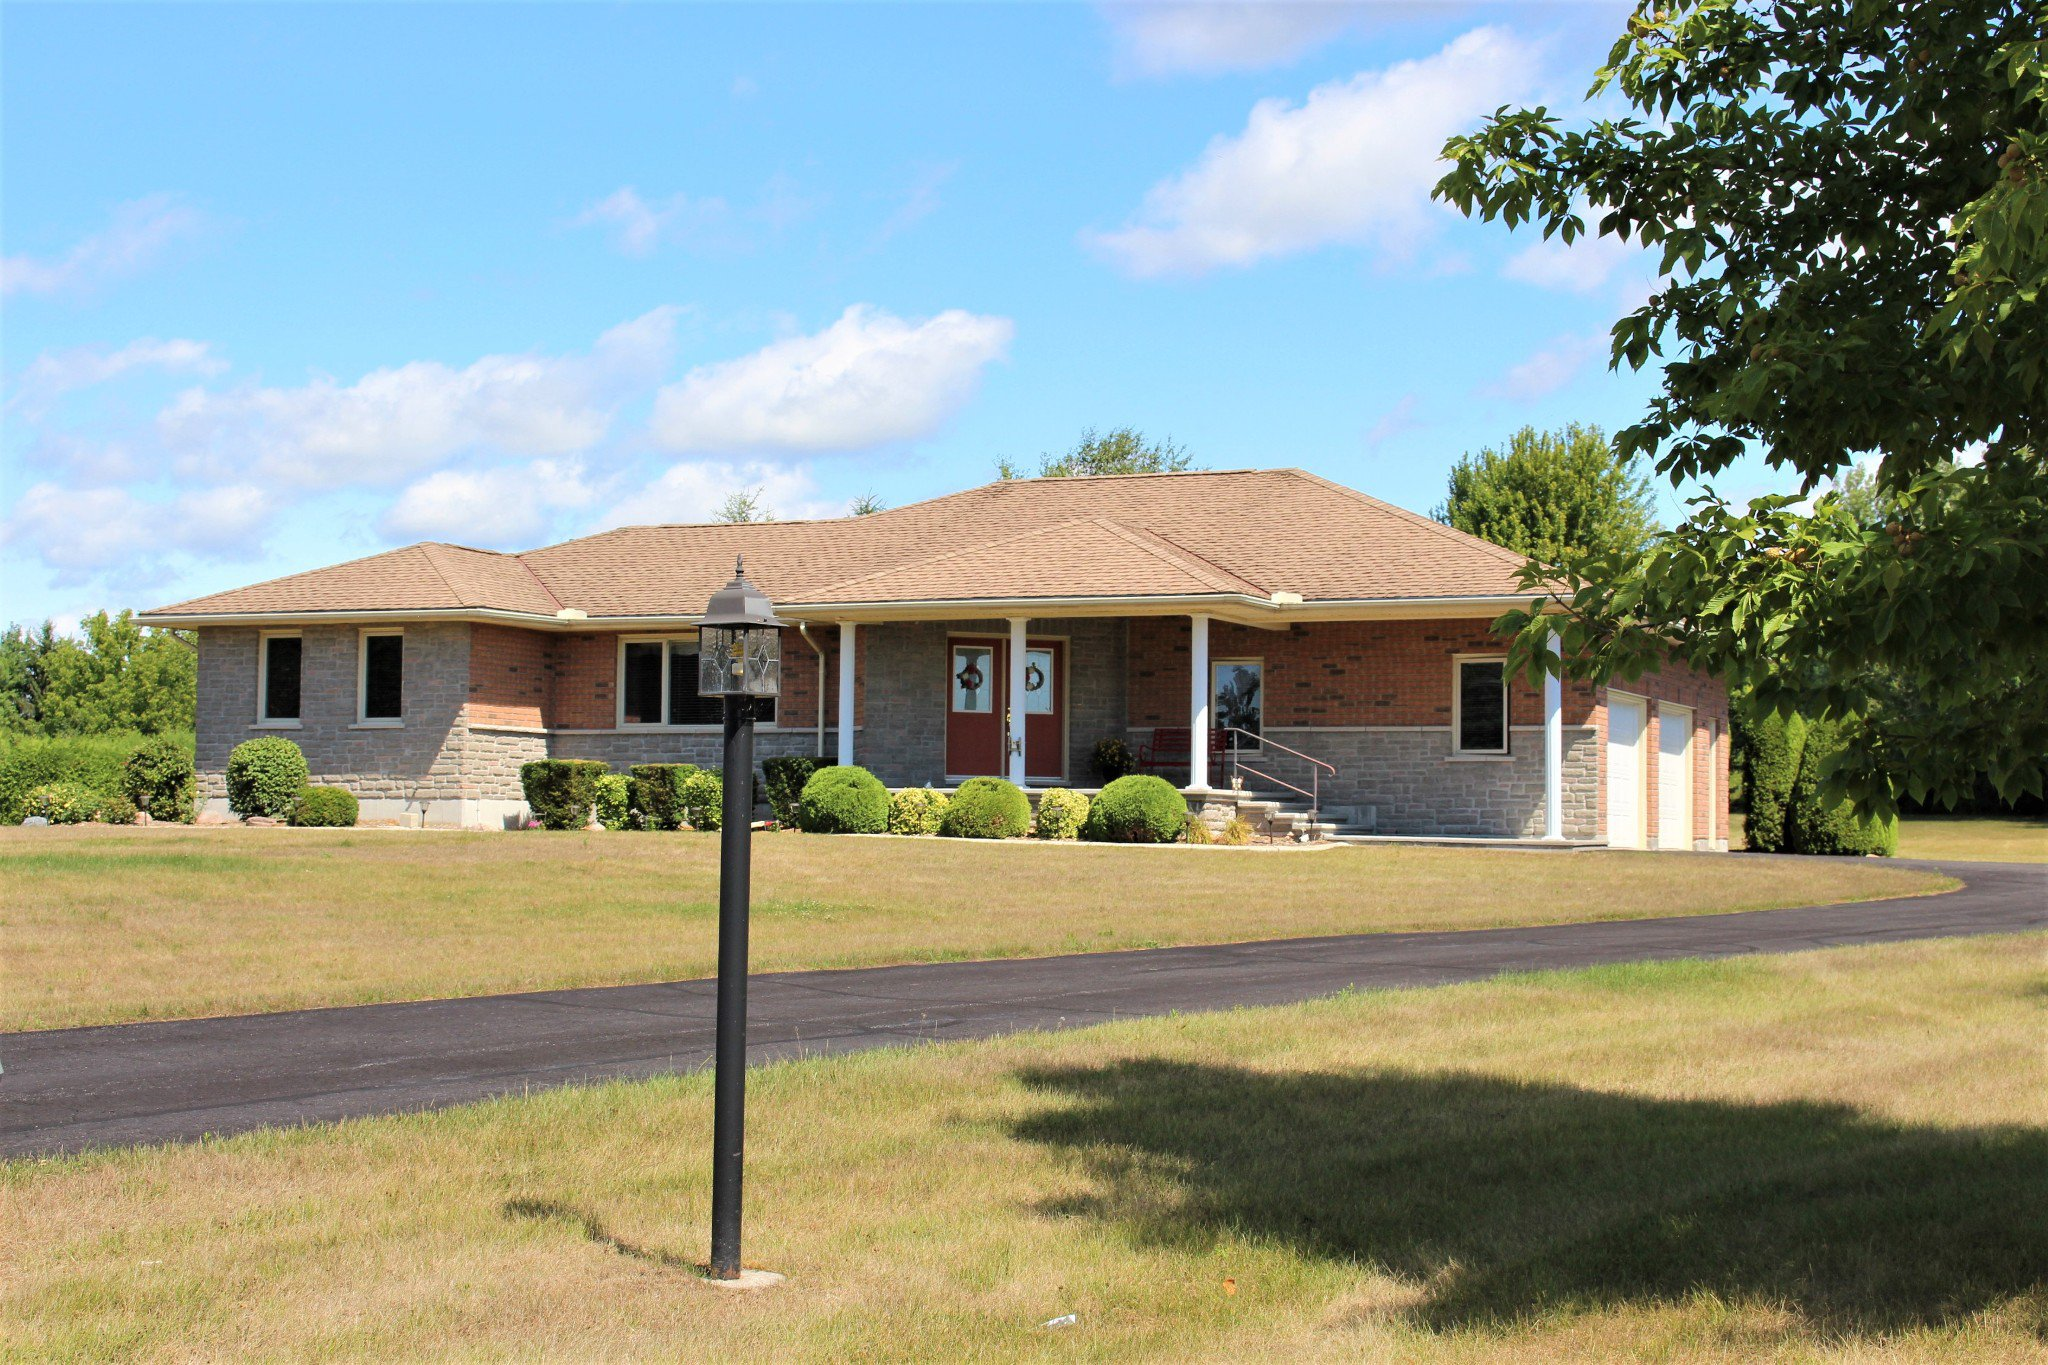 Photo 53: Photos: 159 Nawautin Drive in Grafton: Residential Detached for sale : MLS®# 40012652